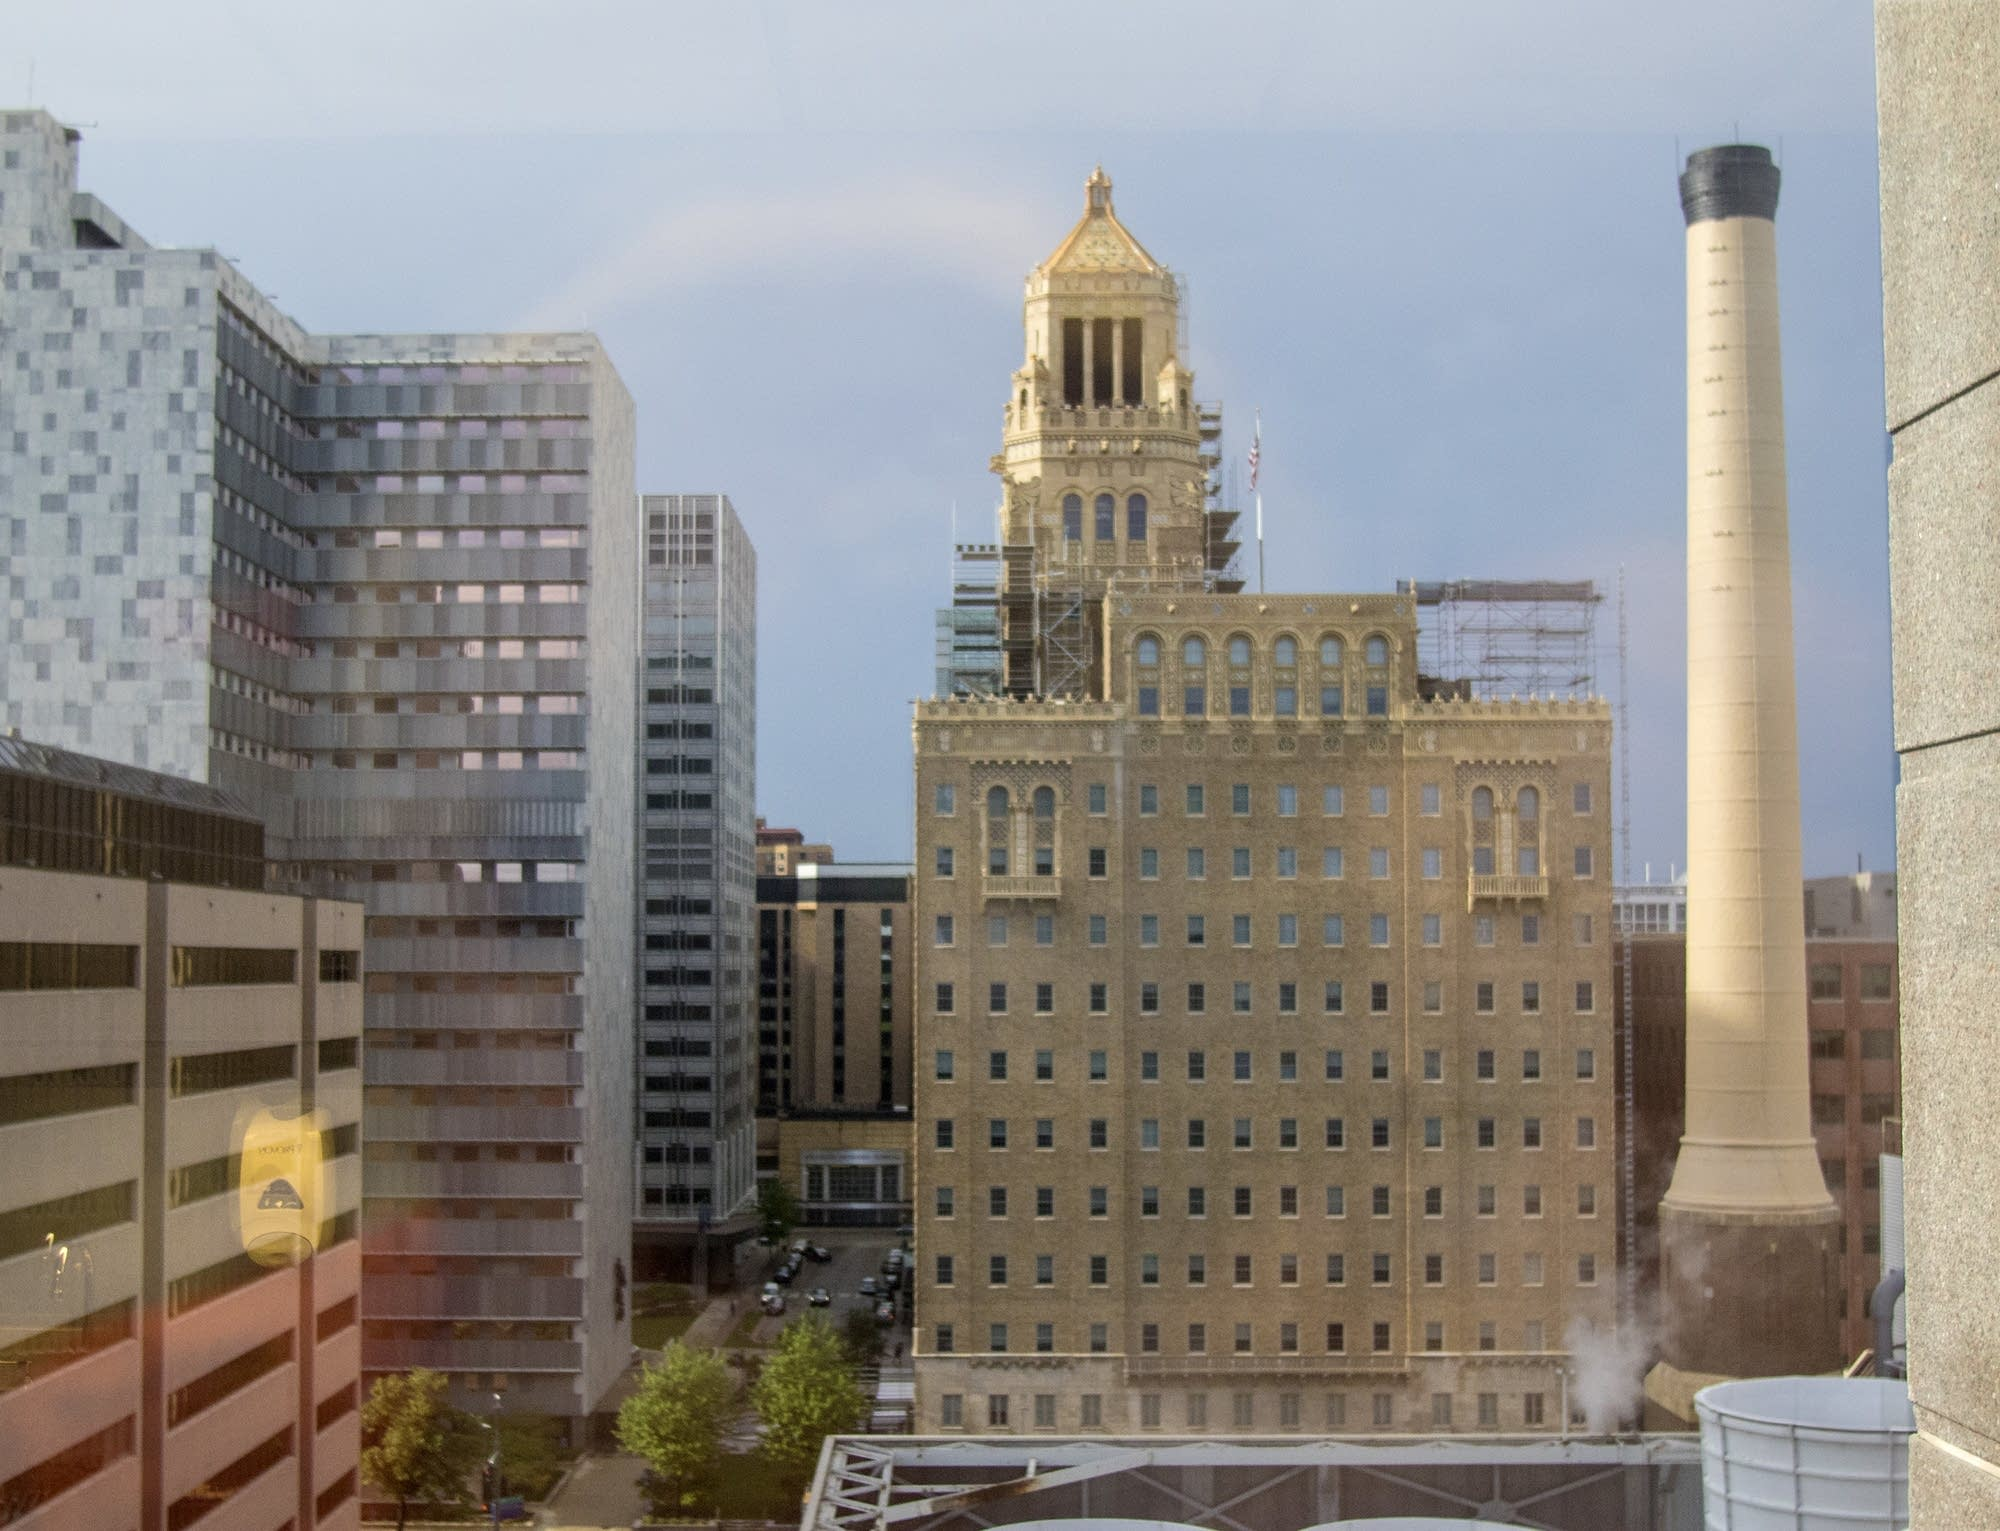 In A Tower 300 Feet Above Rochester A New Carillonneur Plays Songs For All To Hear Mpr News